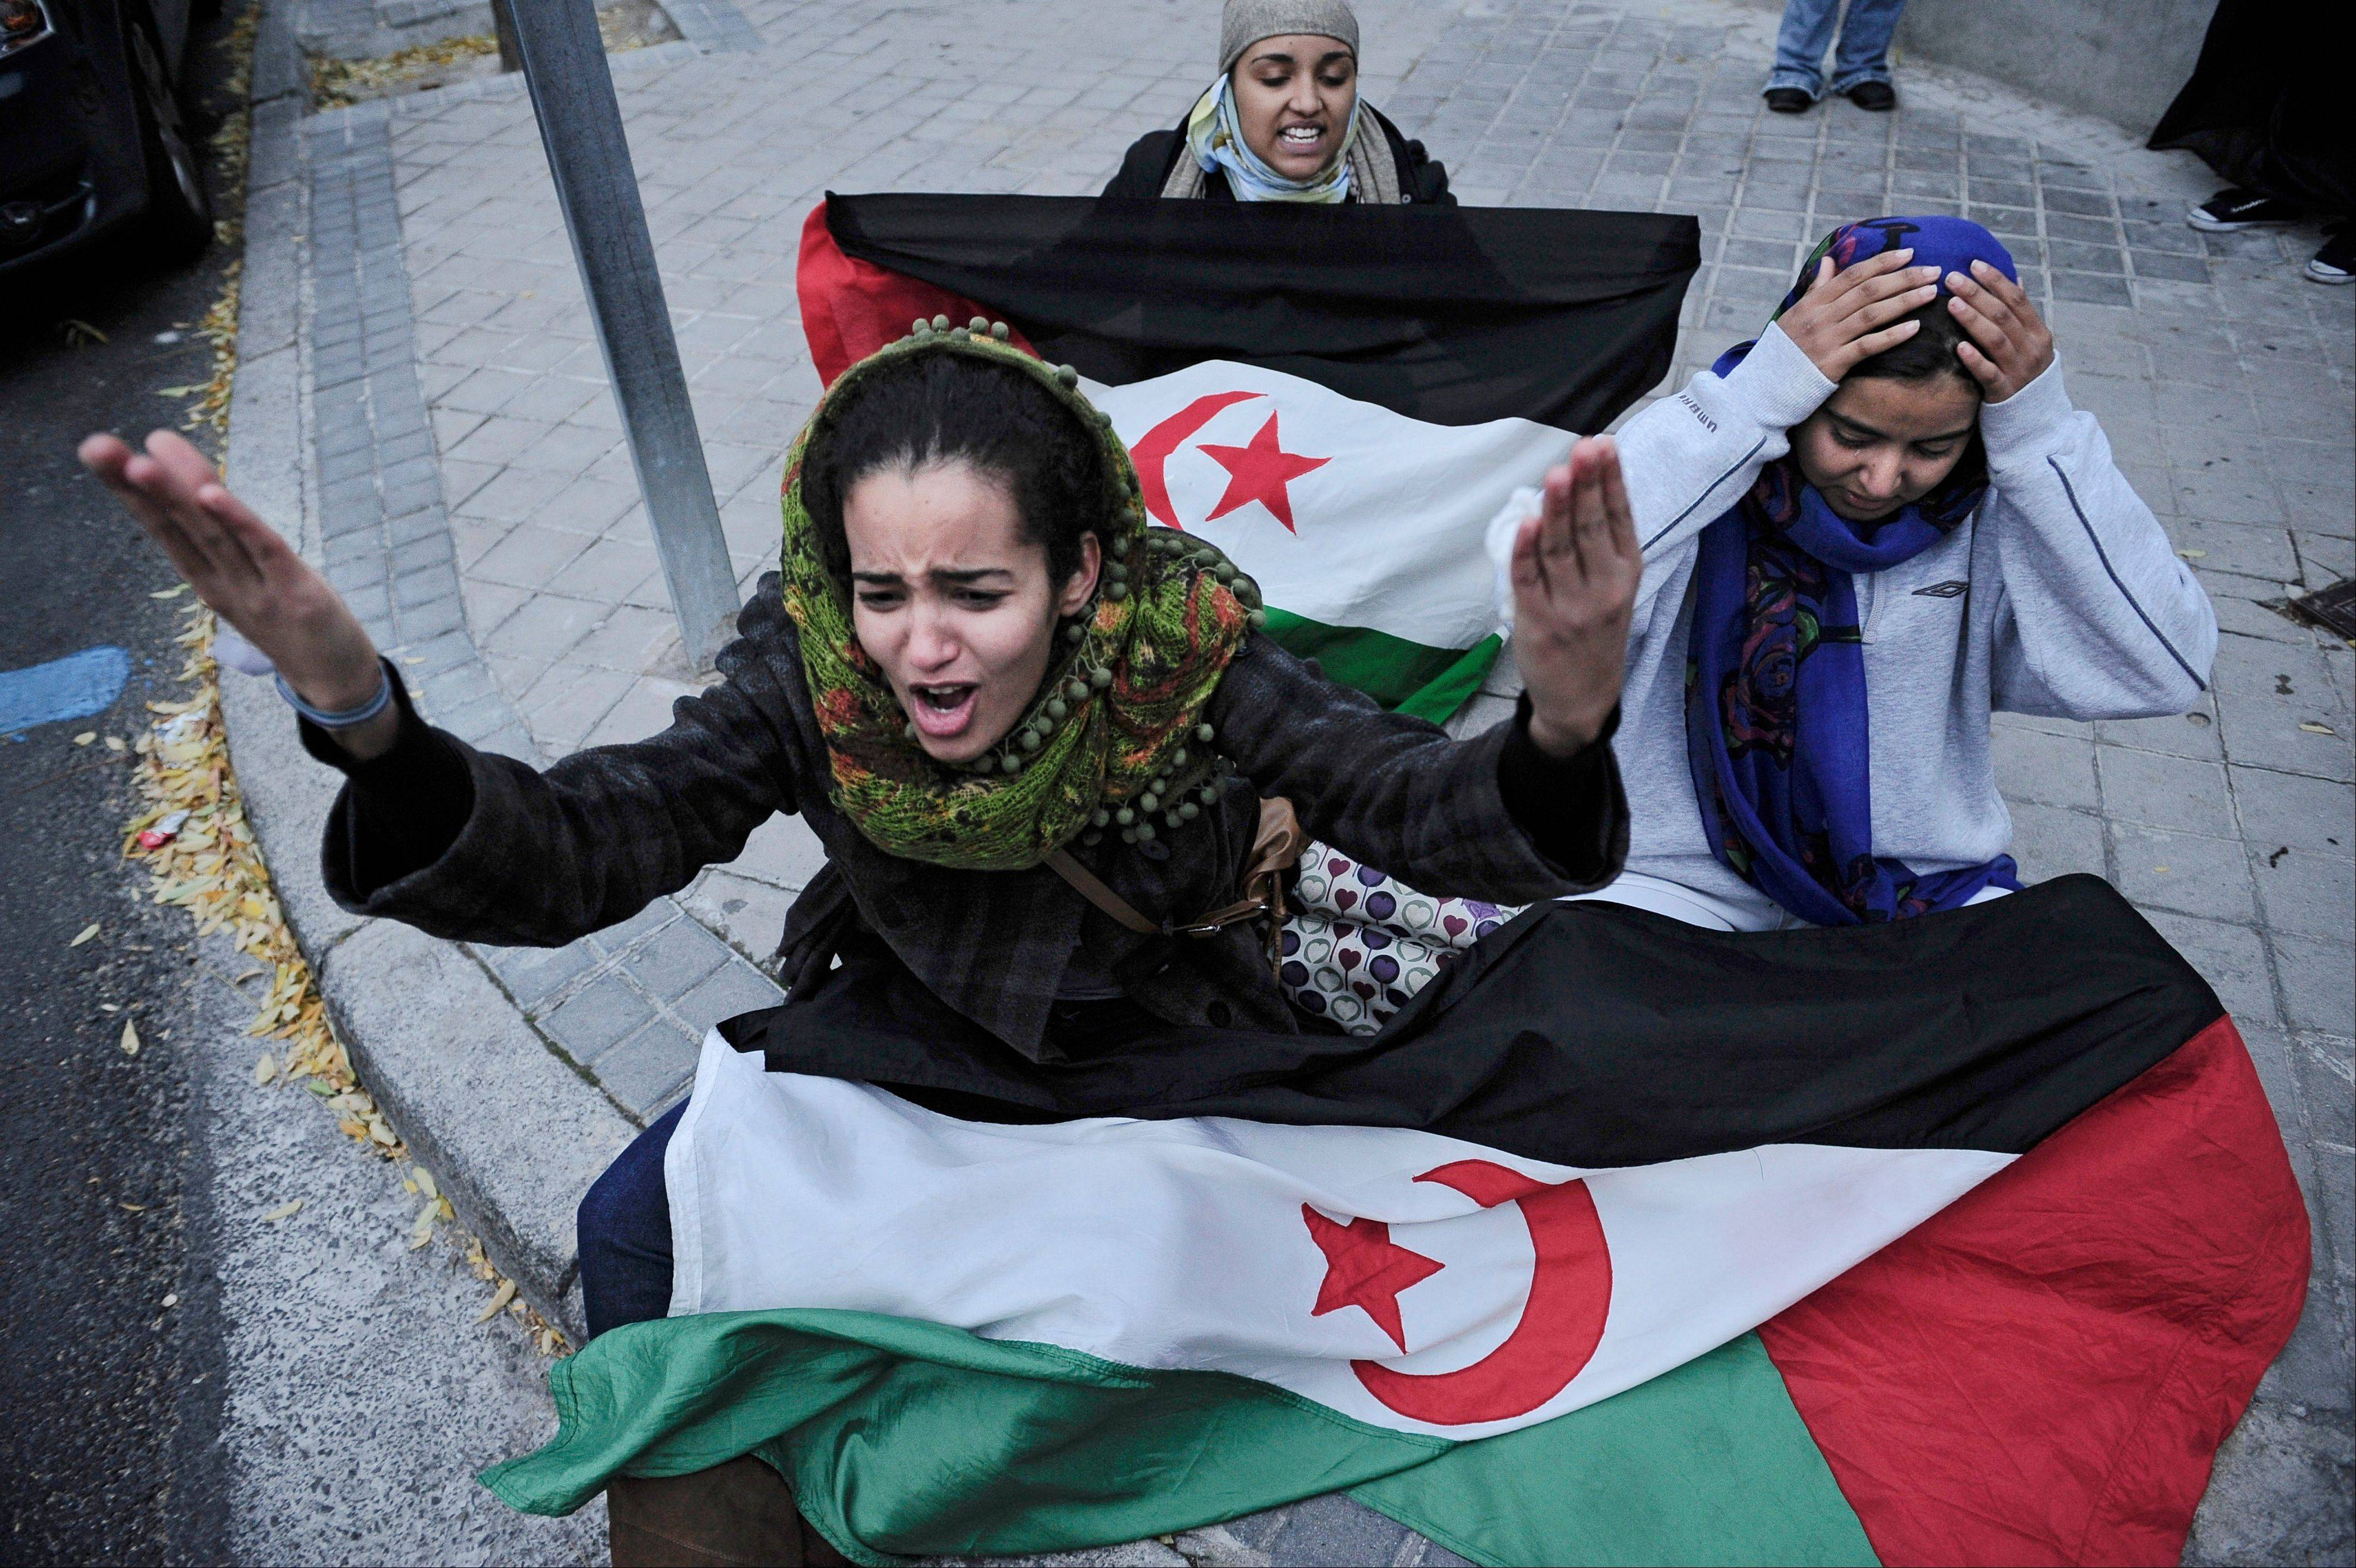 Saharan women protest in front of the Moroccan Embassy in Madrid following deadly clashes with Moroccan authorities in the disputed territory of Western Sahara. The territory, once ruled by Spain, is now claimed by Morocco, which has rejected a self-determination vote, instead proposing wide-ranging autonomy.